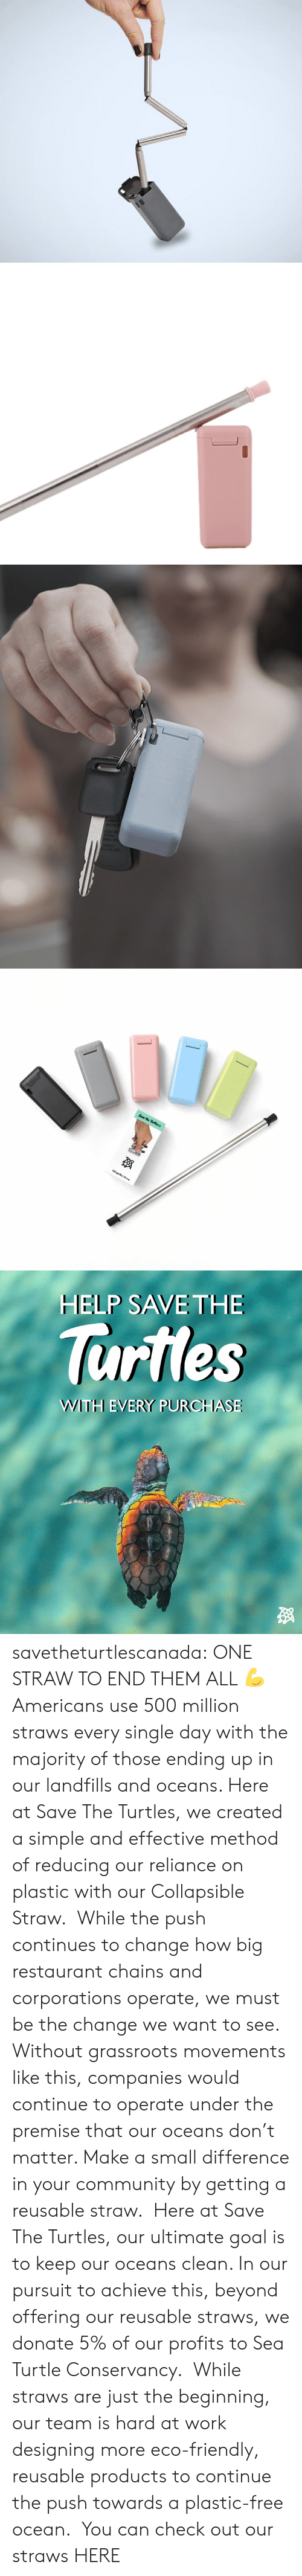 Keep Our: Collapsible Strow   HELP SAVE THE  lurtles  WWITH EVERY PURCHASE savetheturtlescanada: ONE STRAW TO END THEM ALL 💪 Americans use 500 million straws every single day with the majority of those ending up in our landfills and oceans. Here at Save The Turtles, we created a simple and effective method of reducing our reliance on plastic with our Collapsible Straw.  While the push continues to change how big restaurant chains and corporations operate, we must be the change we want to see. Without grassroots movements like this, companies would continue to operate under the premise that our oceans don't matter. Make a small difference in your community by getting a reusable straw.  Here at Save The Turtles, our ultimate goal is to keep our oceans clean. In our pursuit to achieve this, beyond offering our reusable straws, we donate 5% of our profits to Sea Turtle Conservancy.  While straws are just the beginning, our team is hard at work designing more eco-friendly, reusable products to continue the push towards a plastic-free ocean.  You can check out our straws HERE